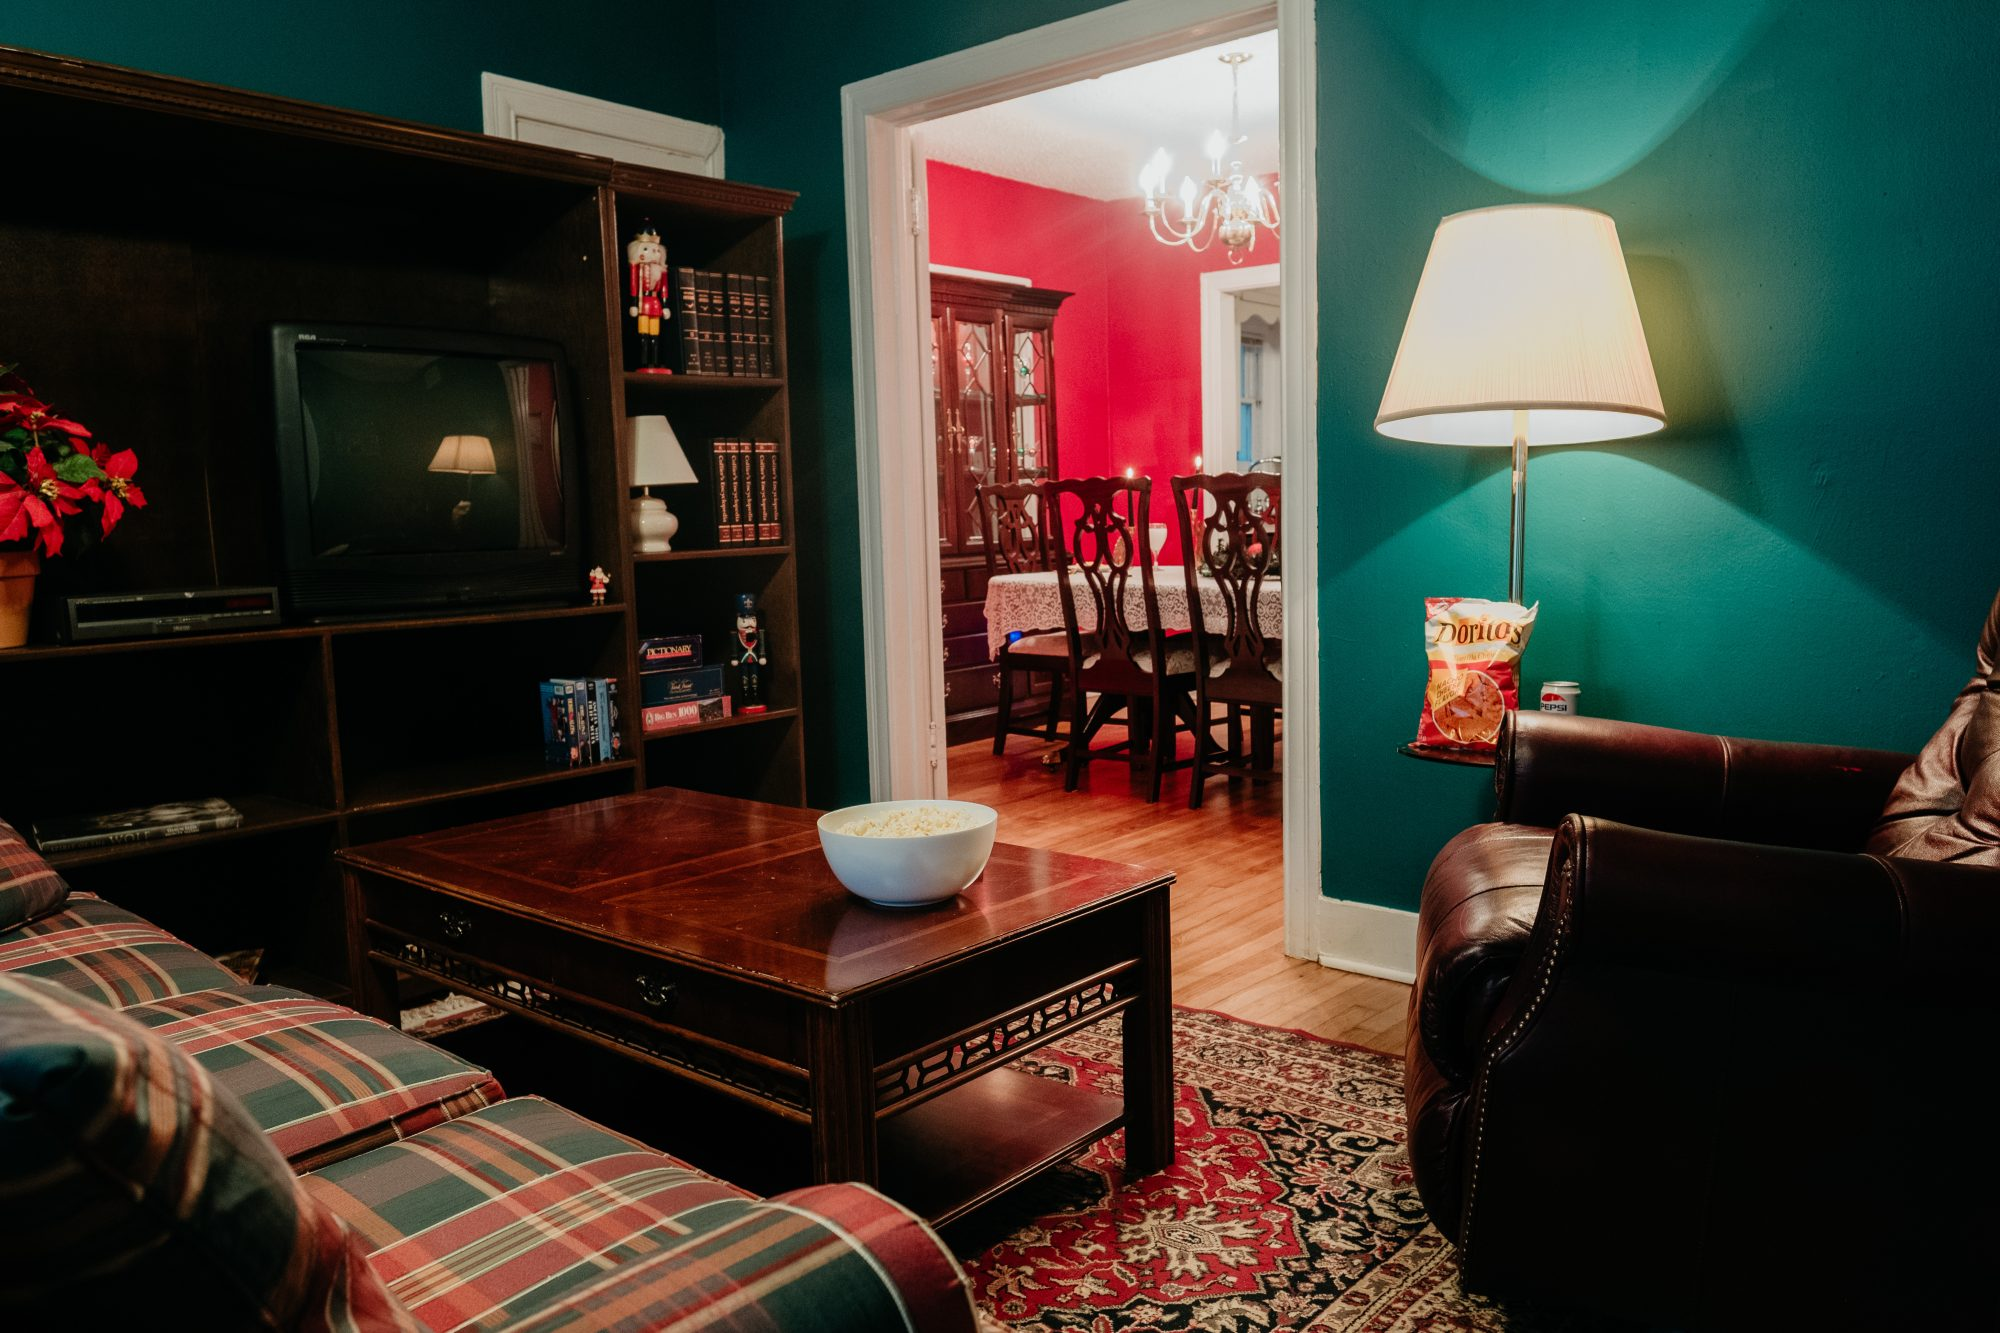 home alone-themed airbnb